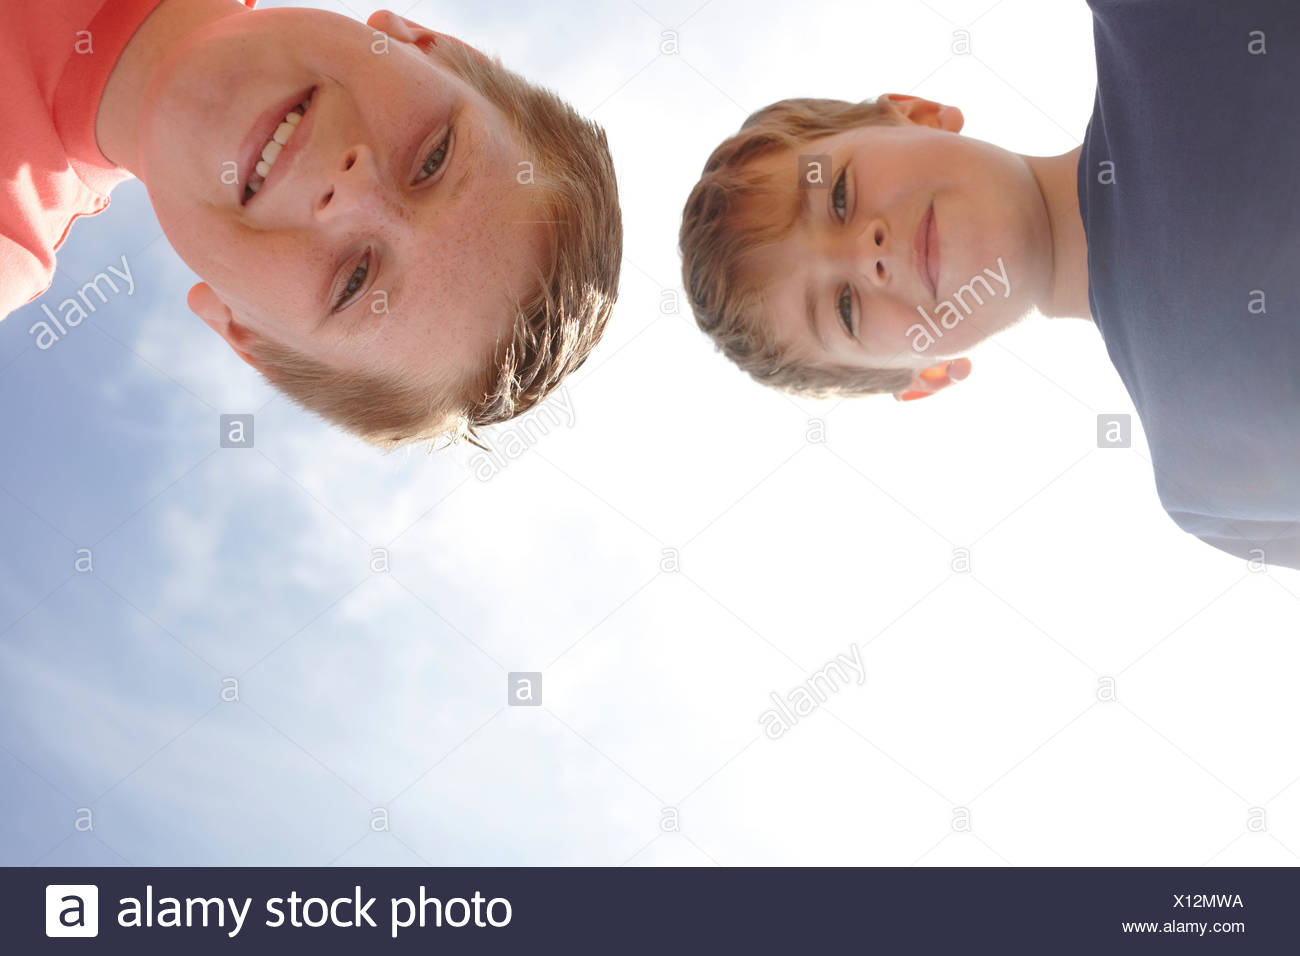 Two boys looking at camera, viewed from below - Stock Image